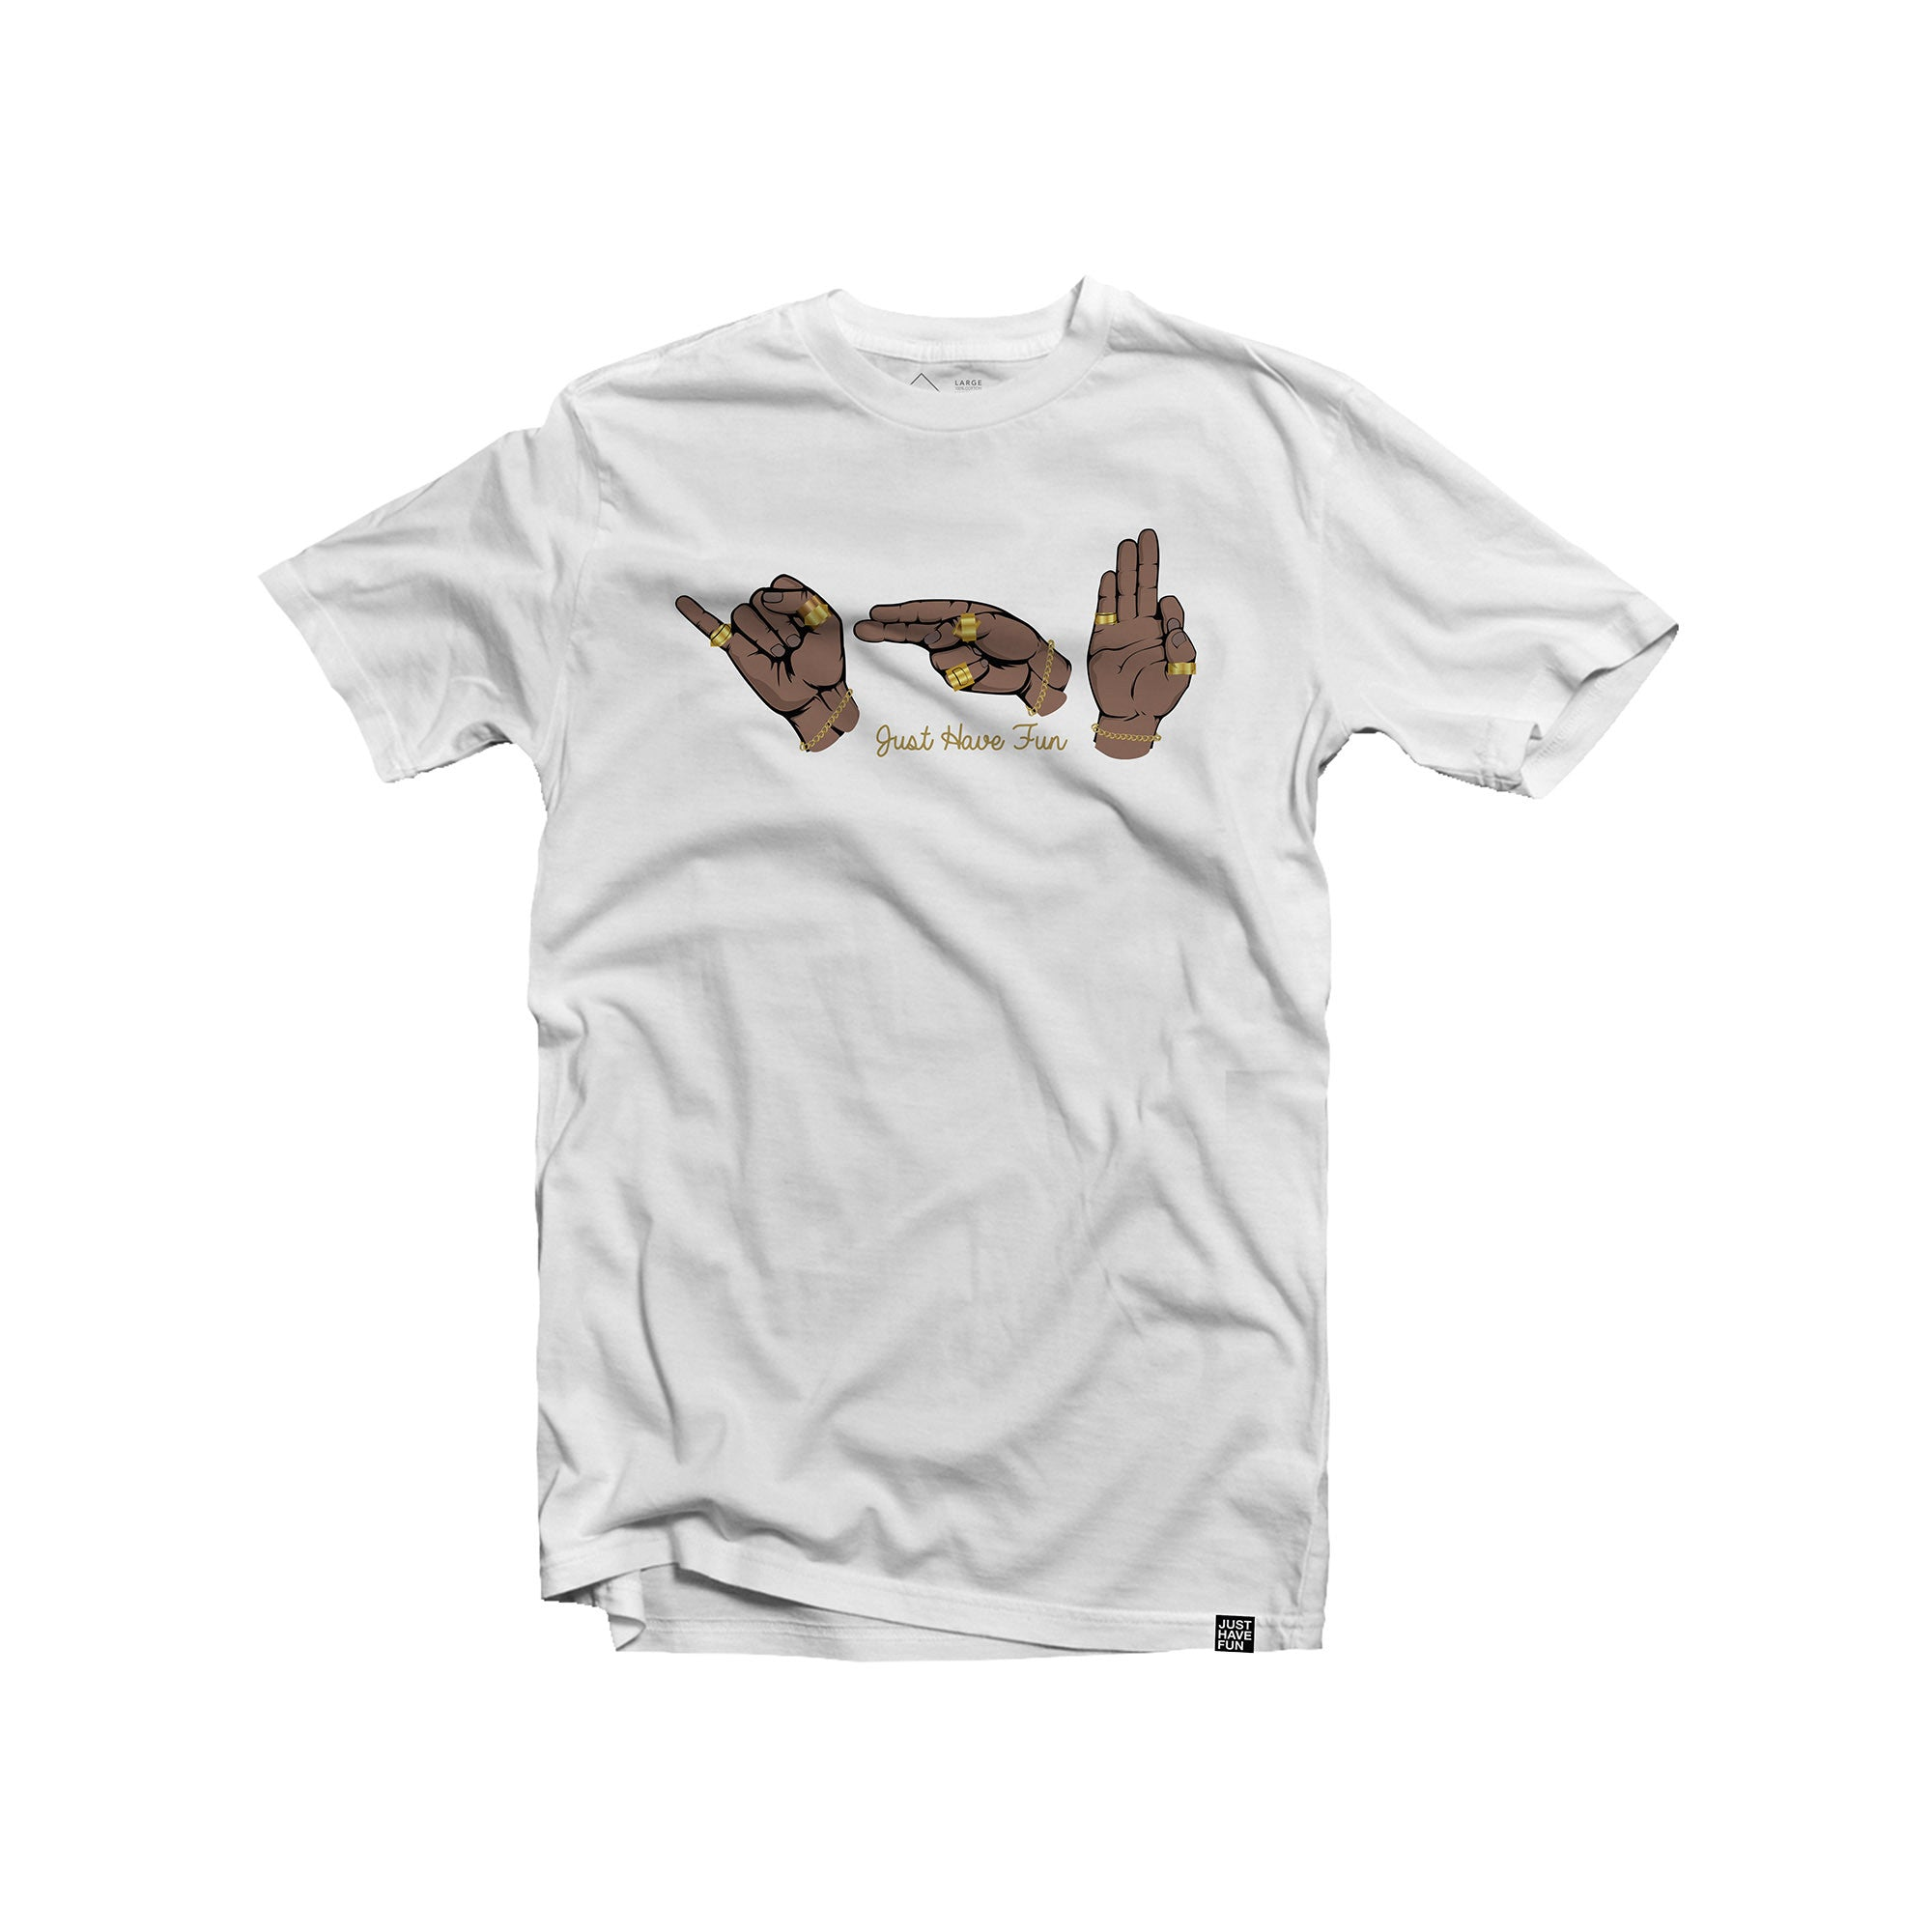 Sign Language Tee White